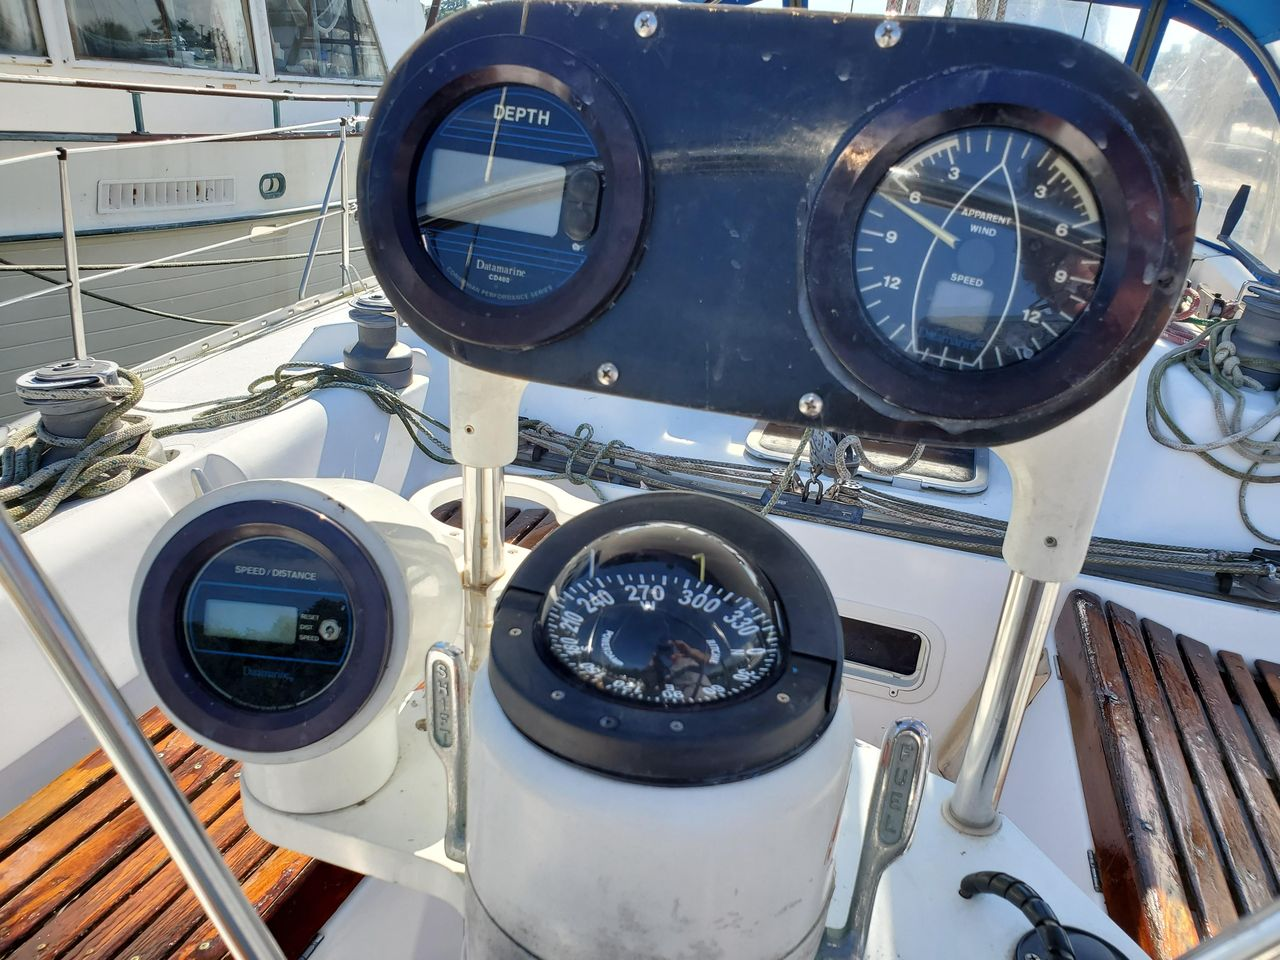 1986 Used Hunter 40 Cruiser Sailboat For Sale - $33,000